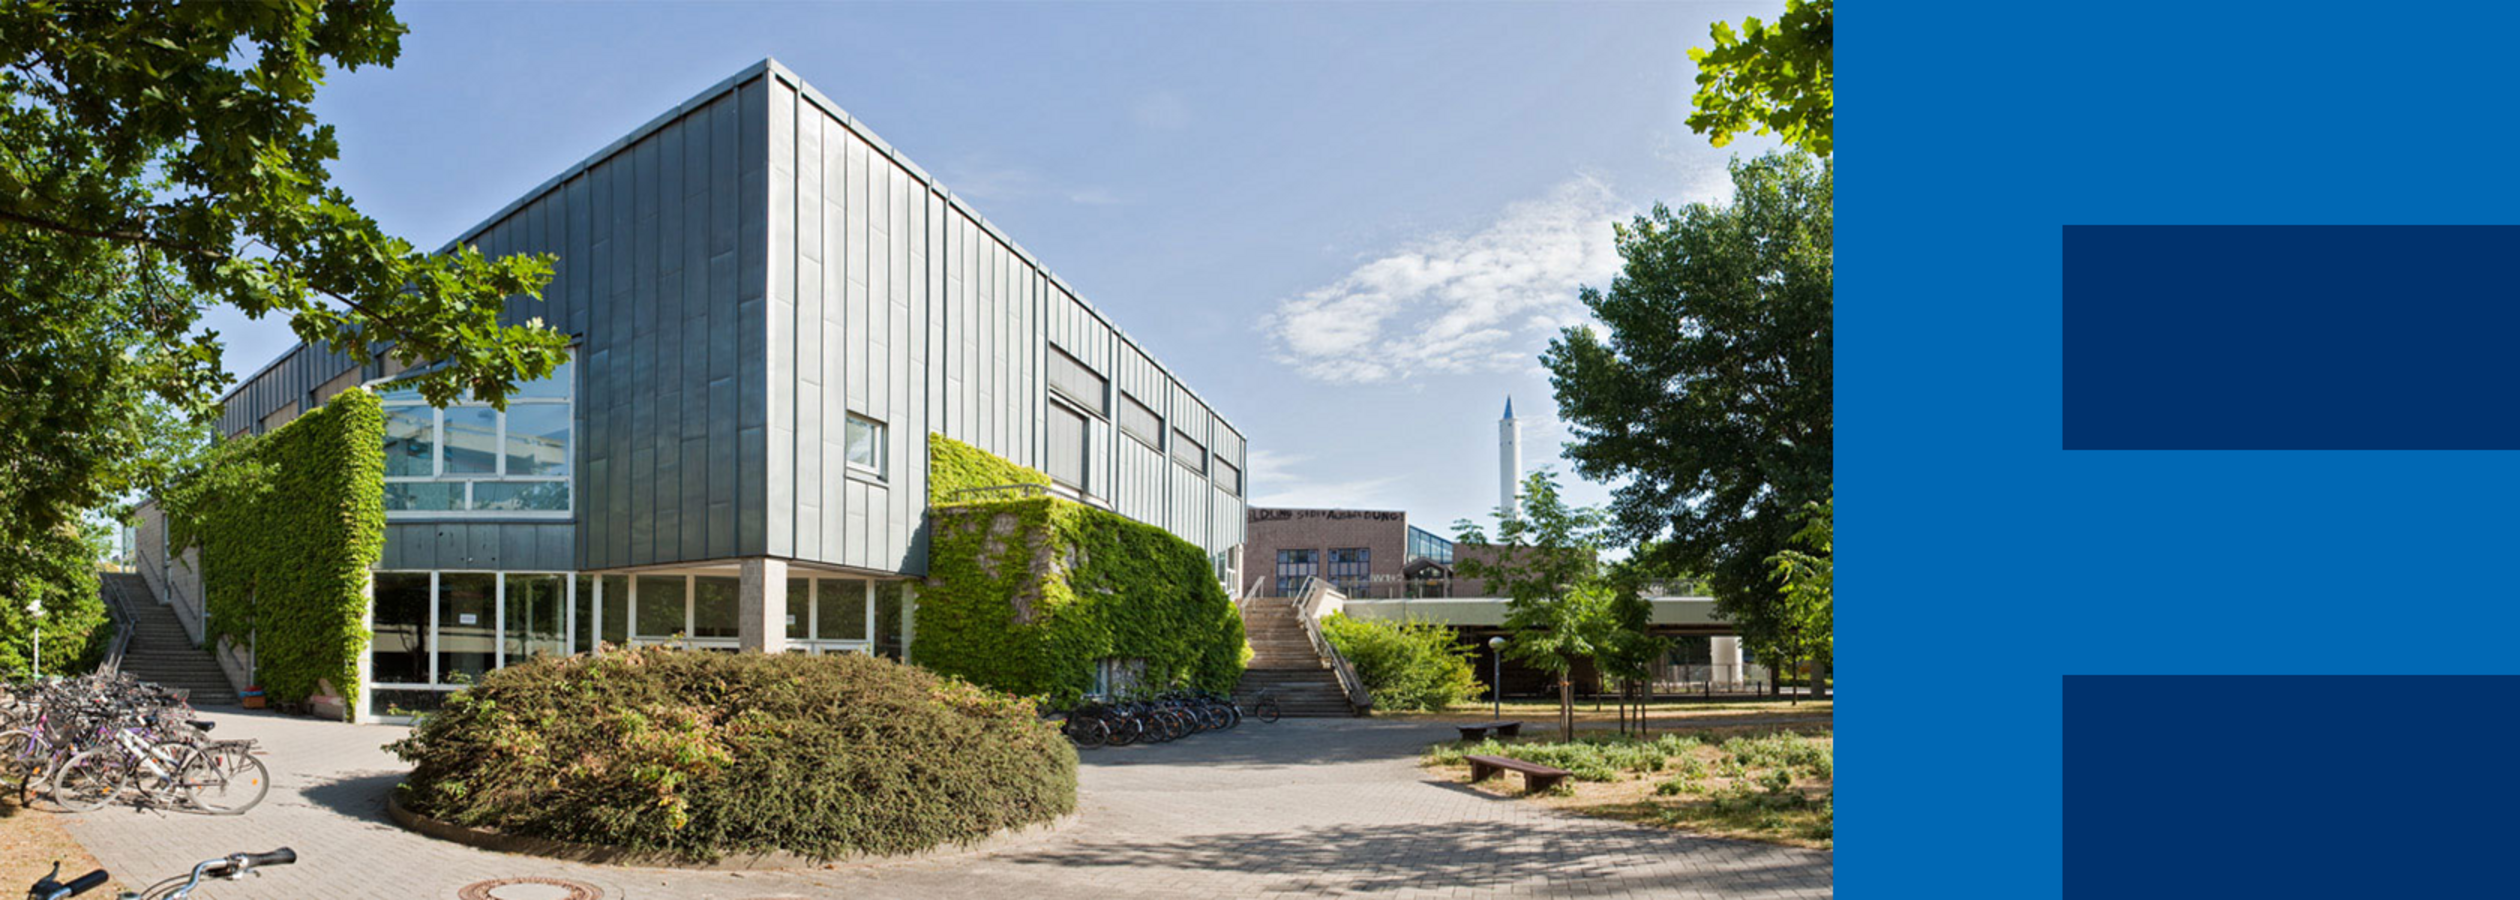 "View of the lecture hall building of the university, called ""Keksdose"""